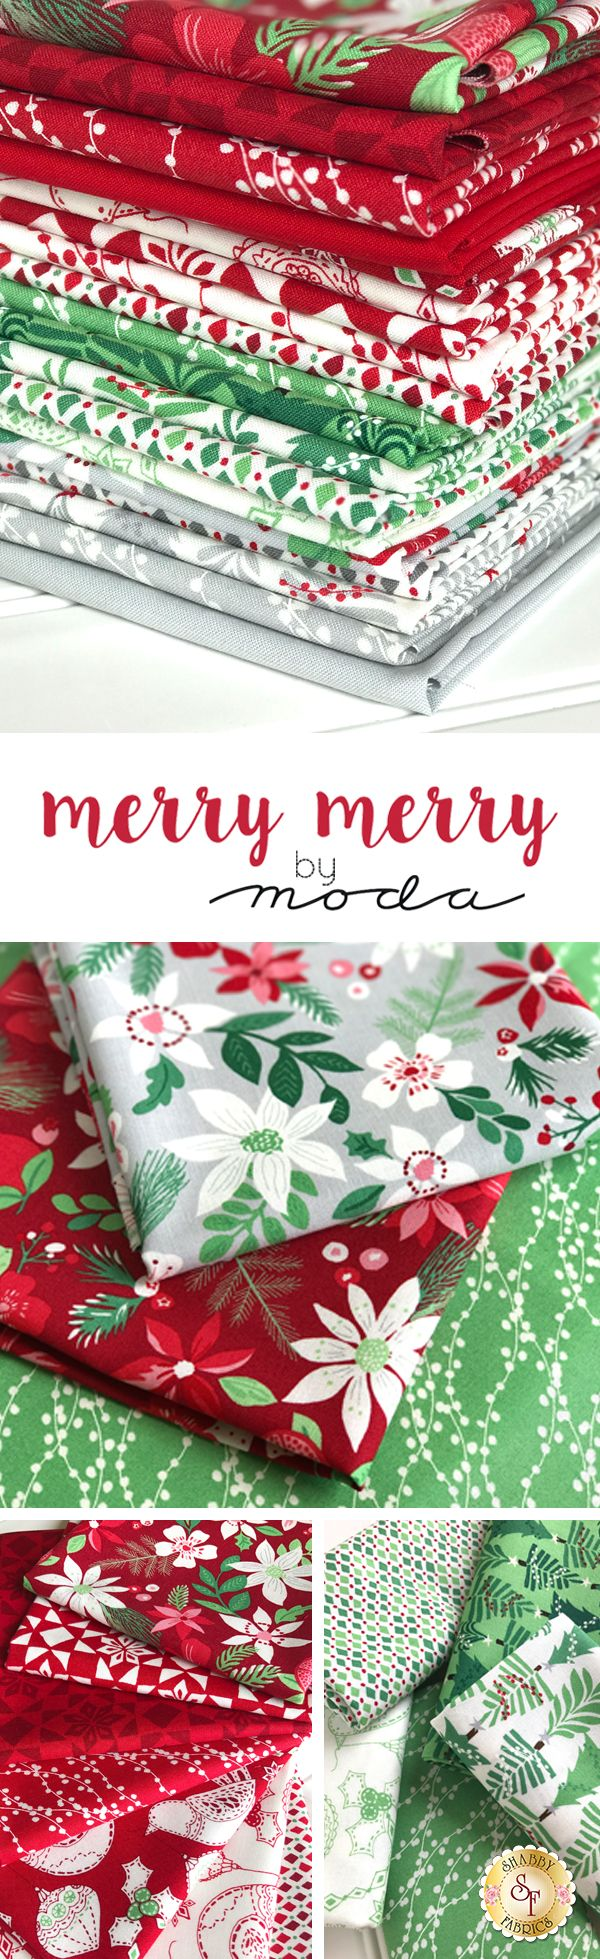 Merry Merry is a delightful holiday collection by Kate Spain for Moda Fabrics available at Shabby Fabrics!